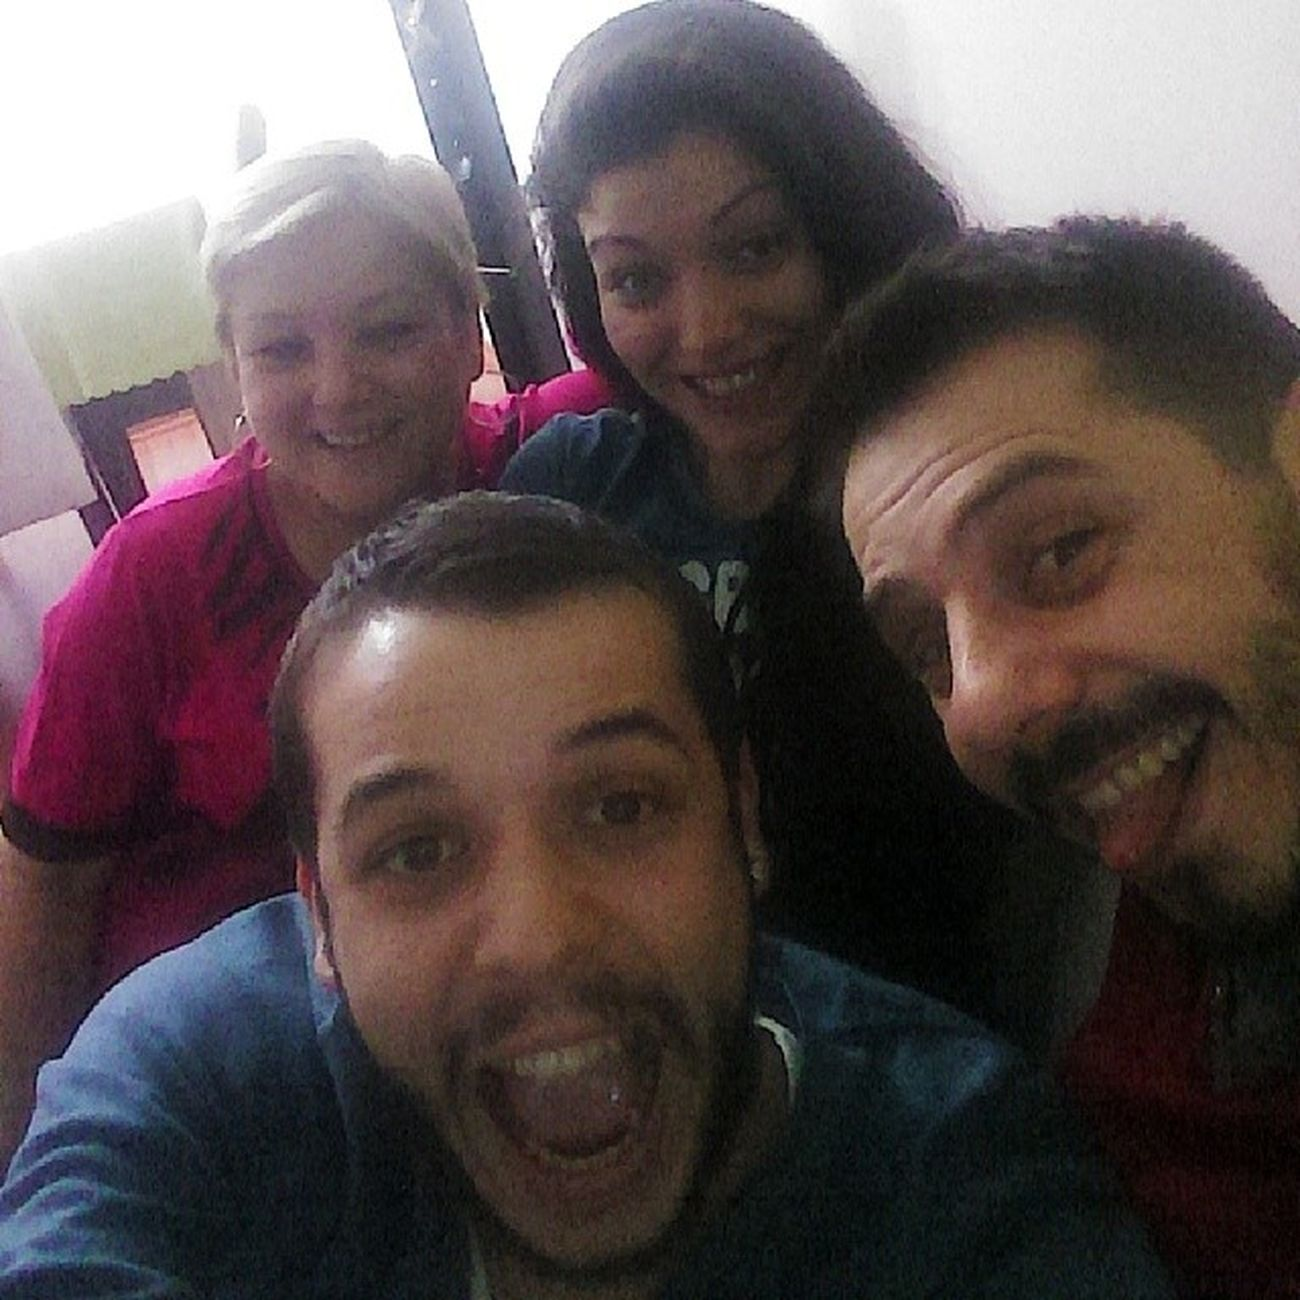 Family Selfie Mother Yenge brother cirkiniz ama modabu selfie photo absolut etkileri :)